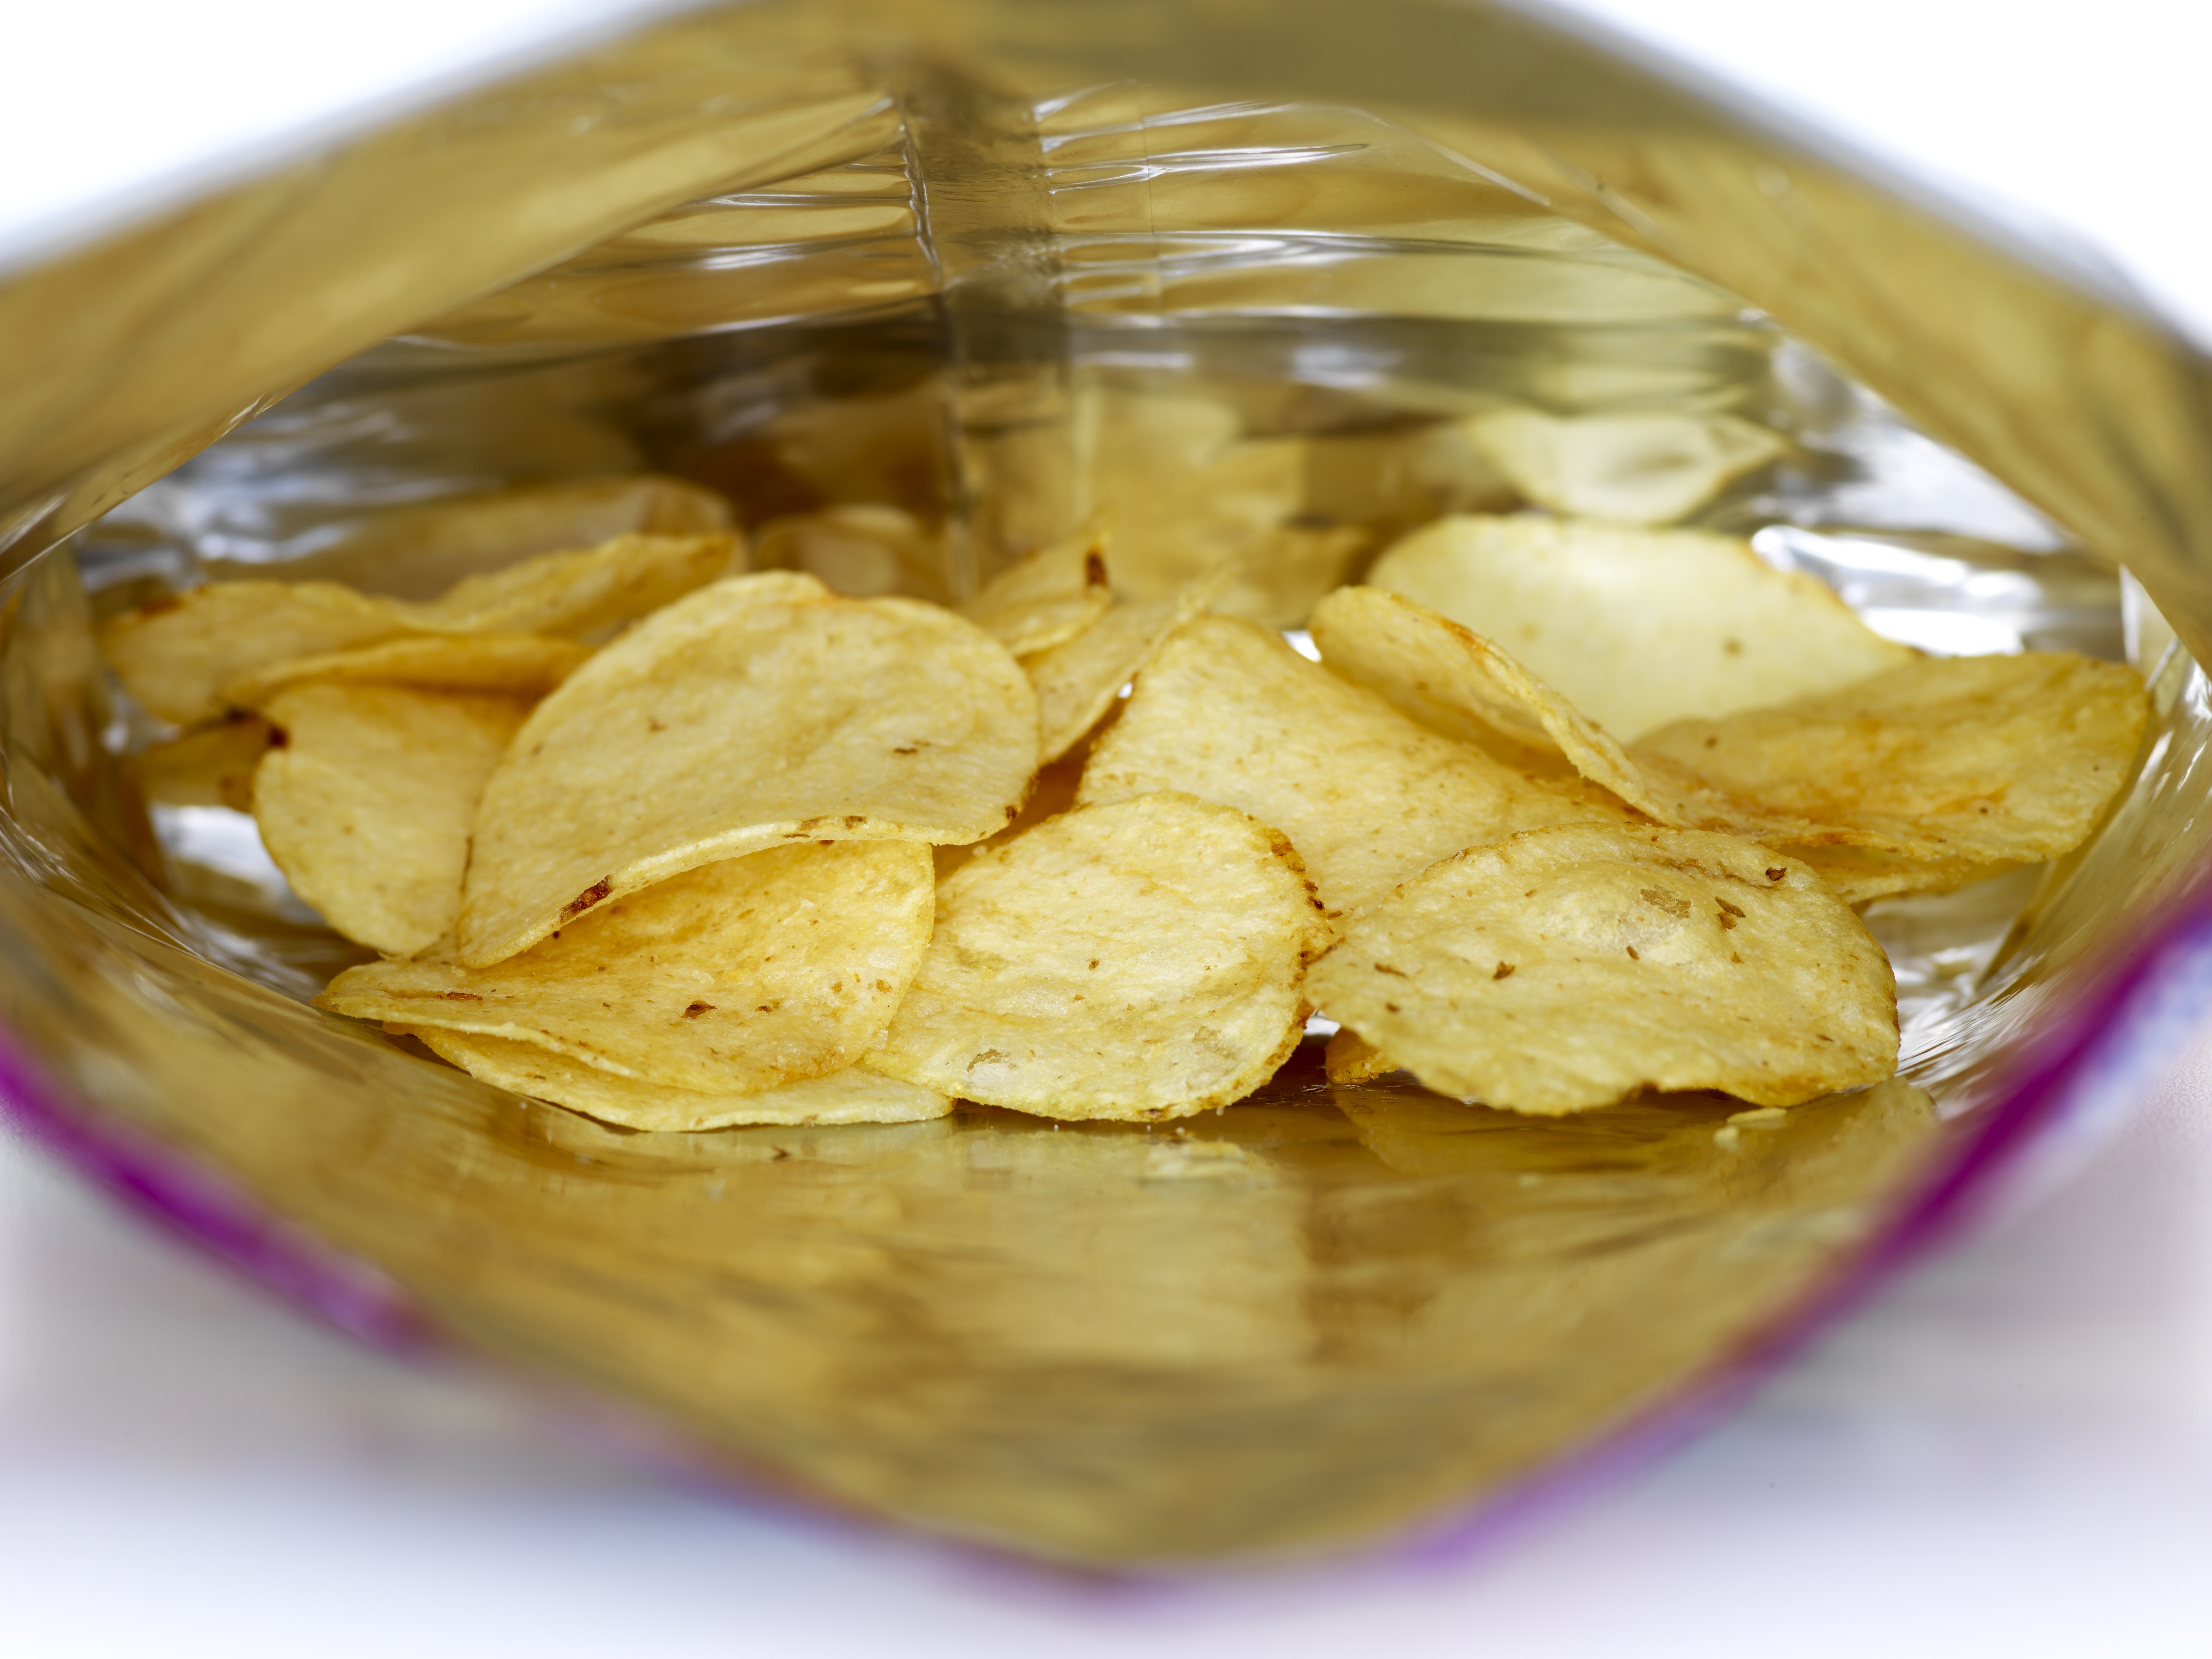 Wise Potato Chips Maker Slapped With Lawsuit Time